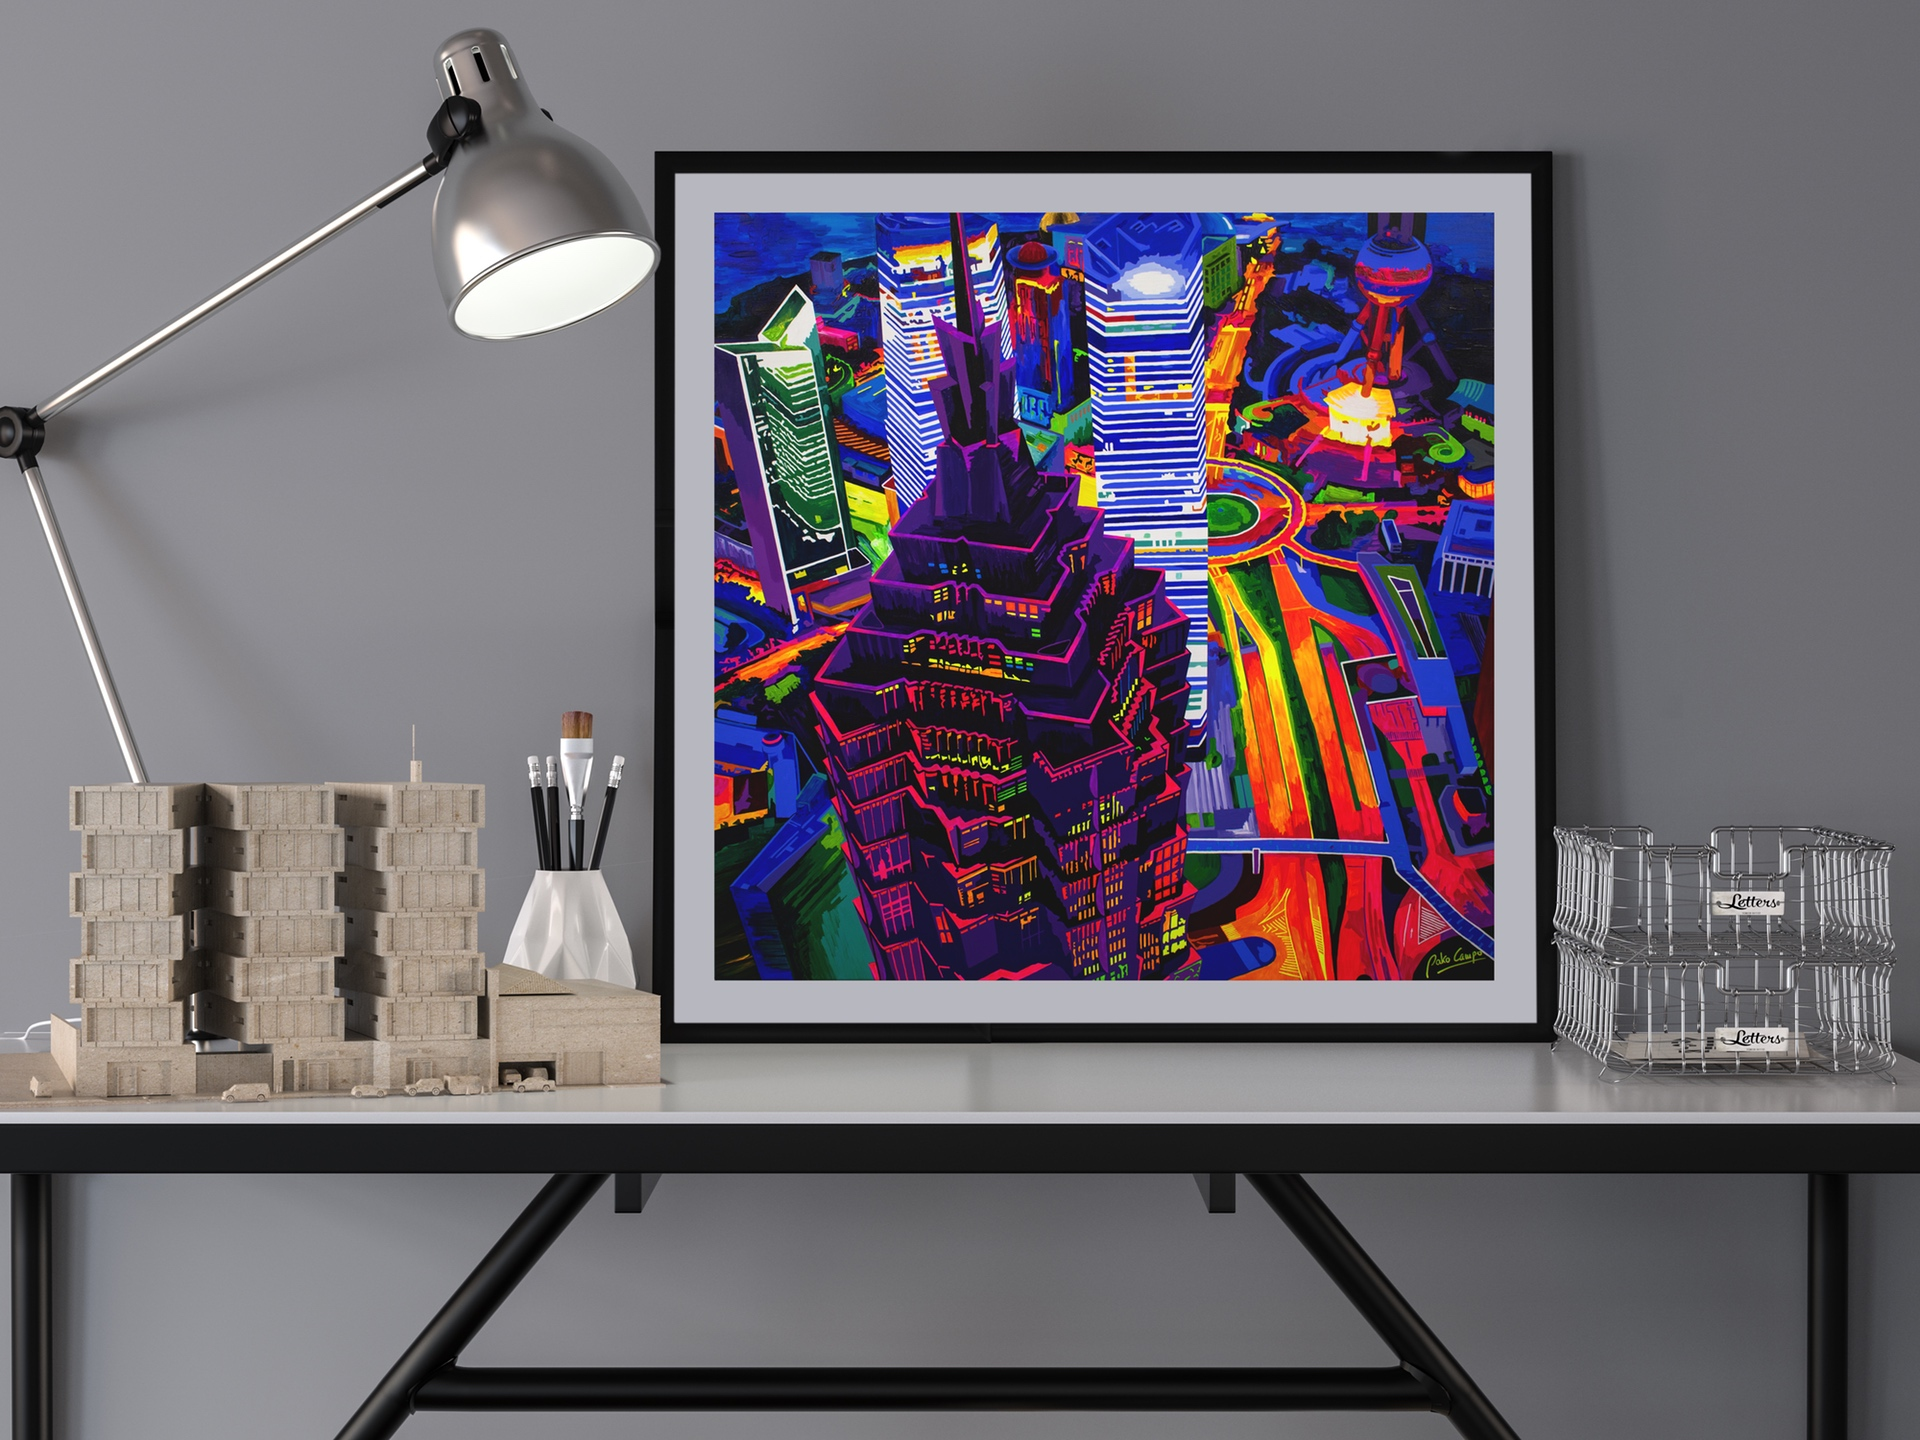 Shanghai Kolor - Limited edition giclée print by Pako Campo